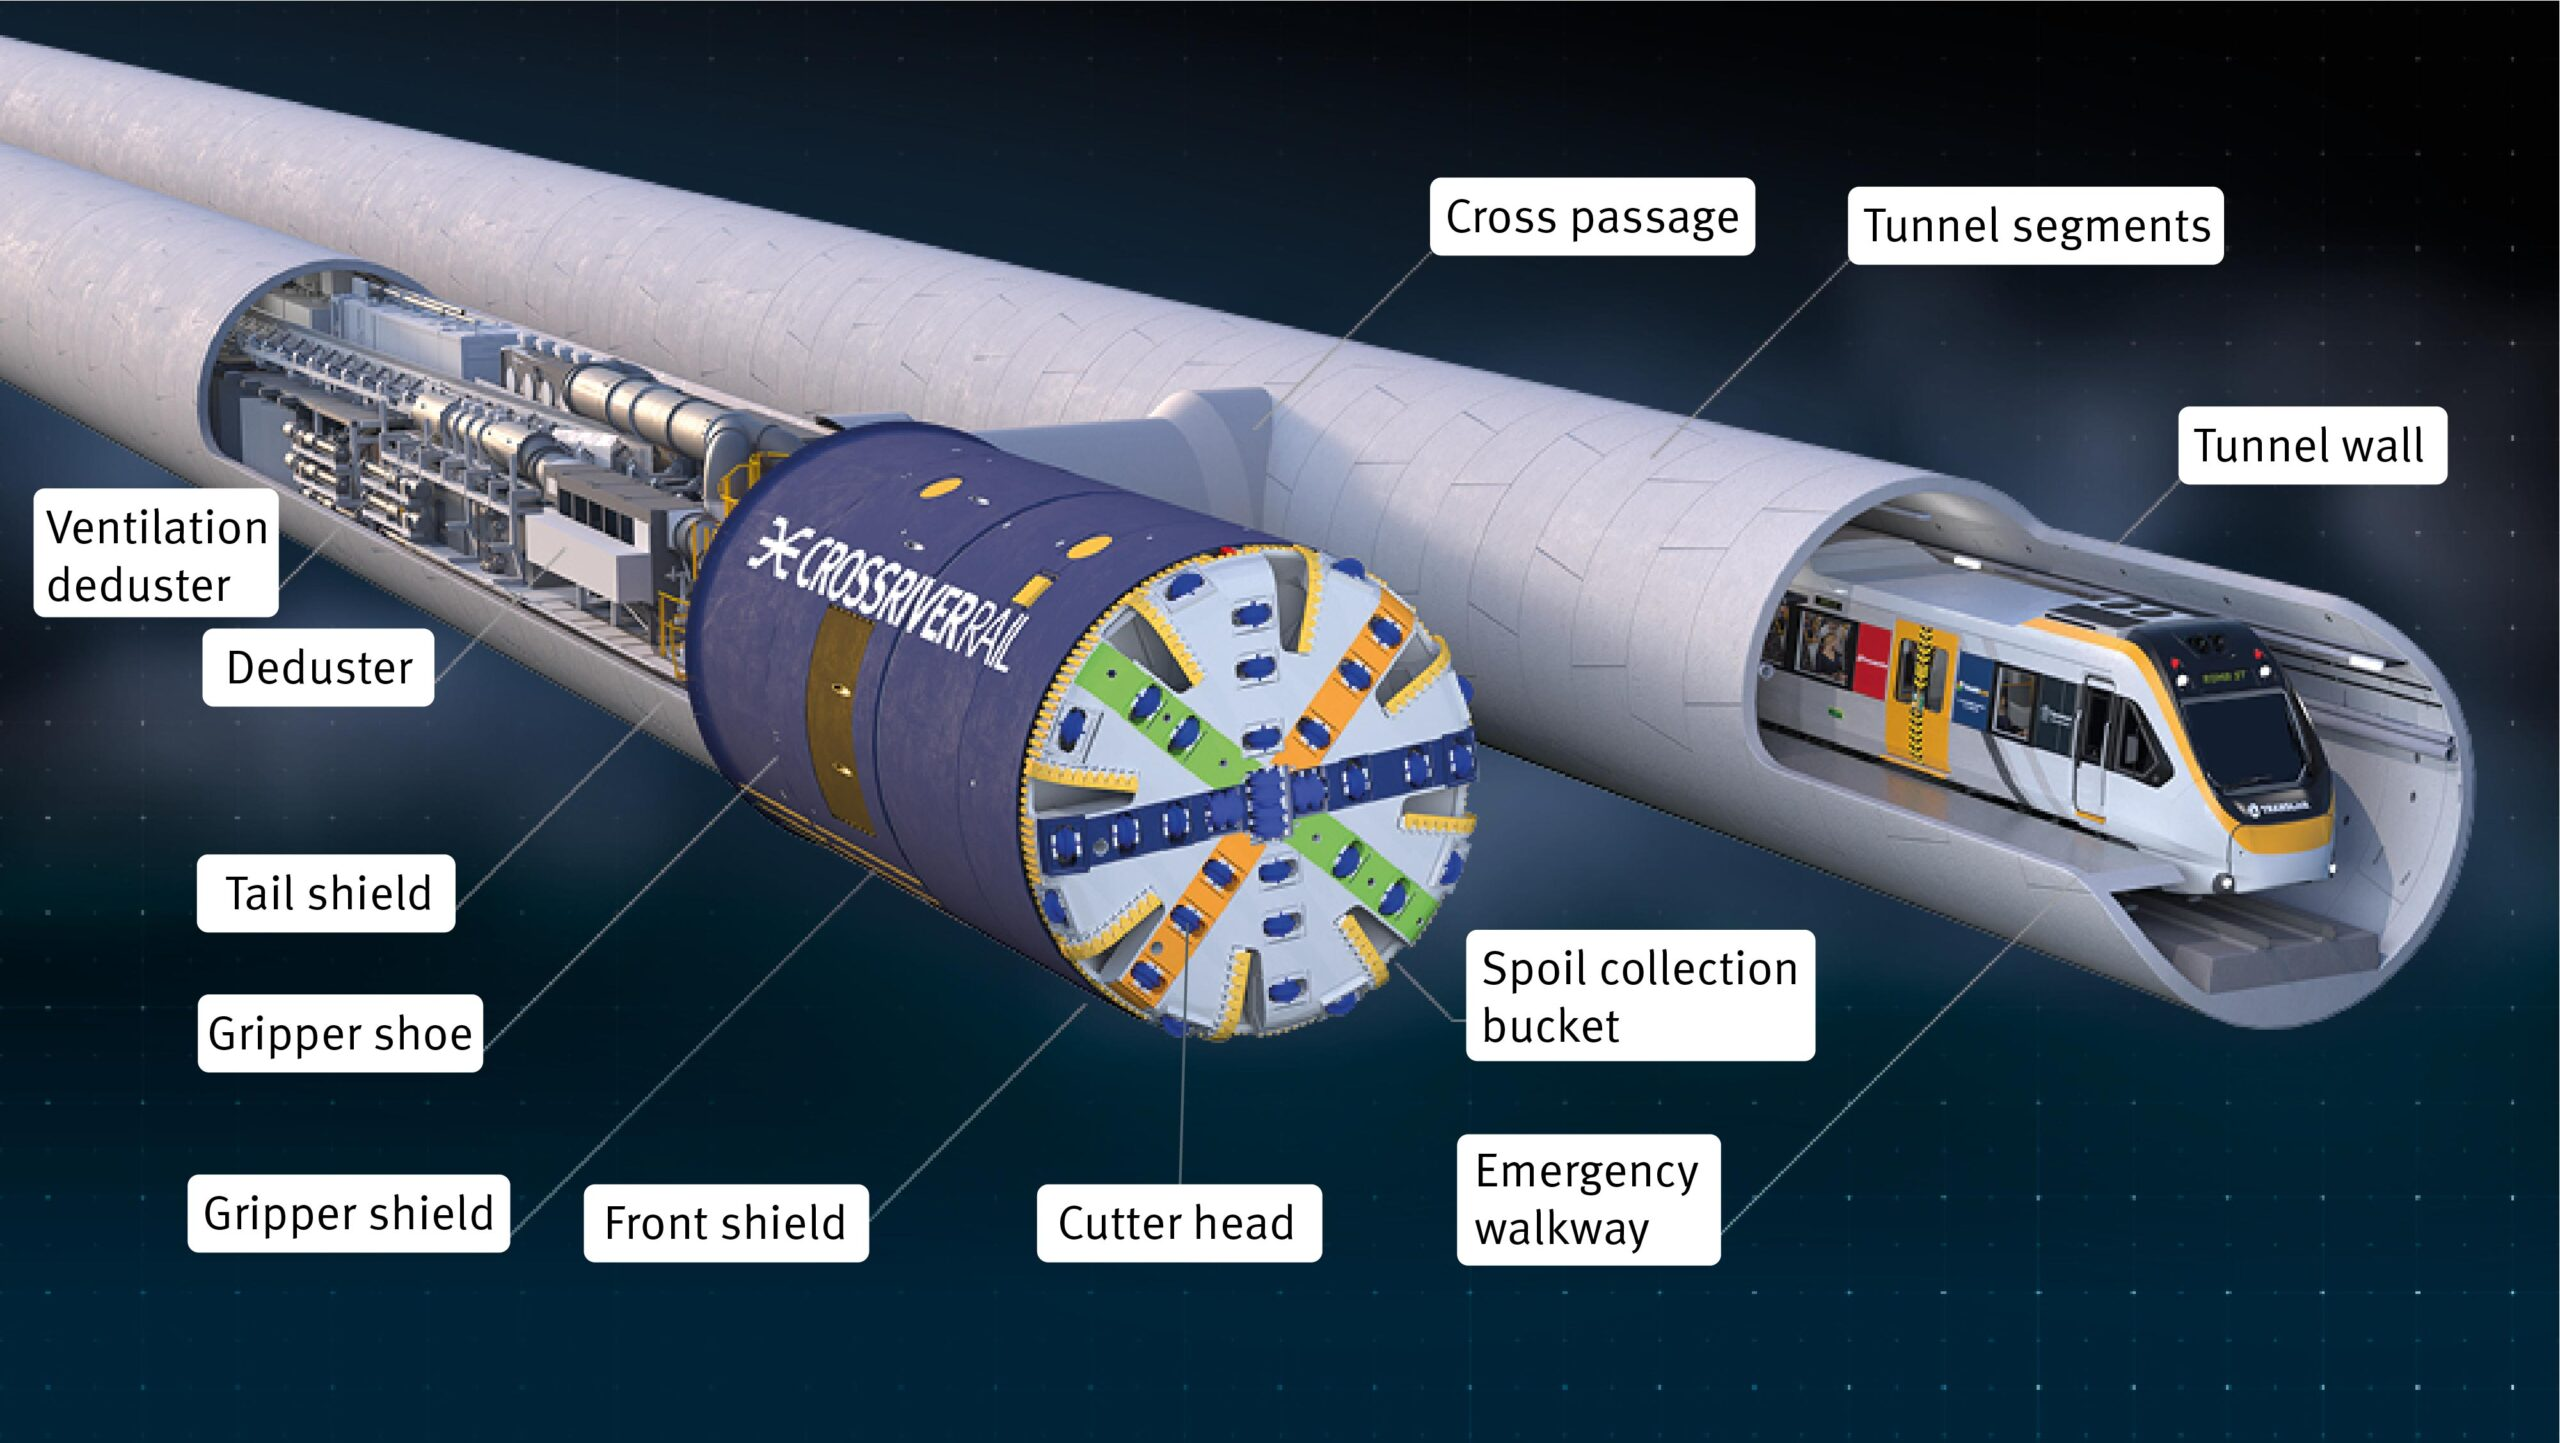 3D image of tunnel boring machine with major components labelled